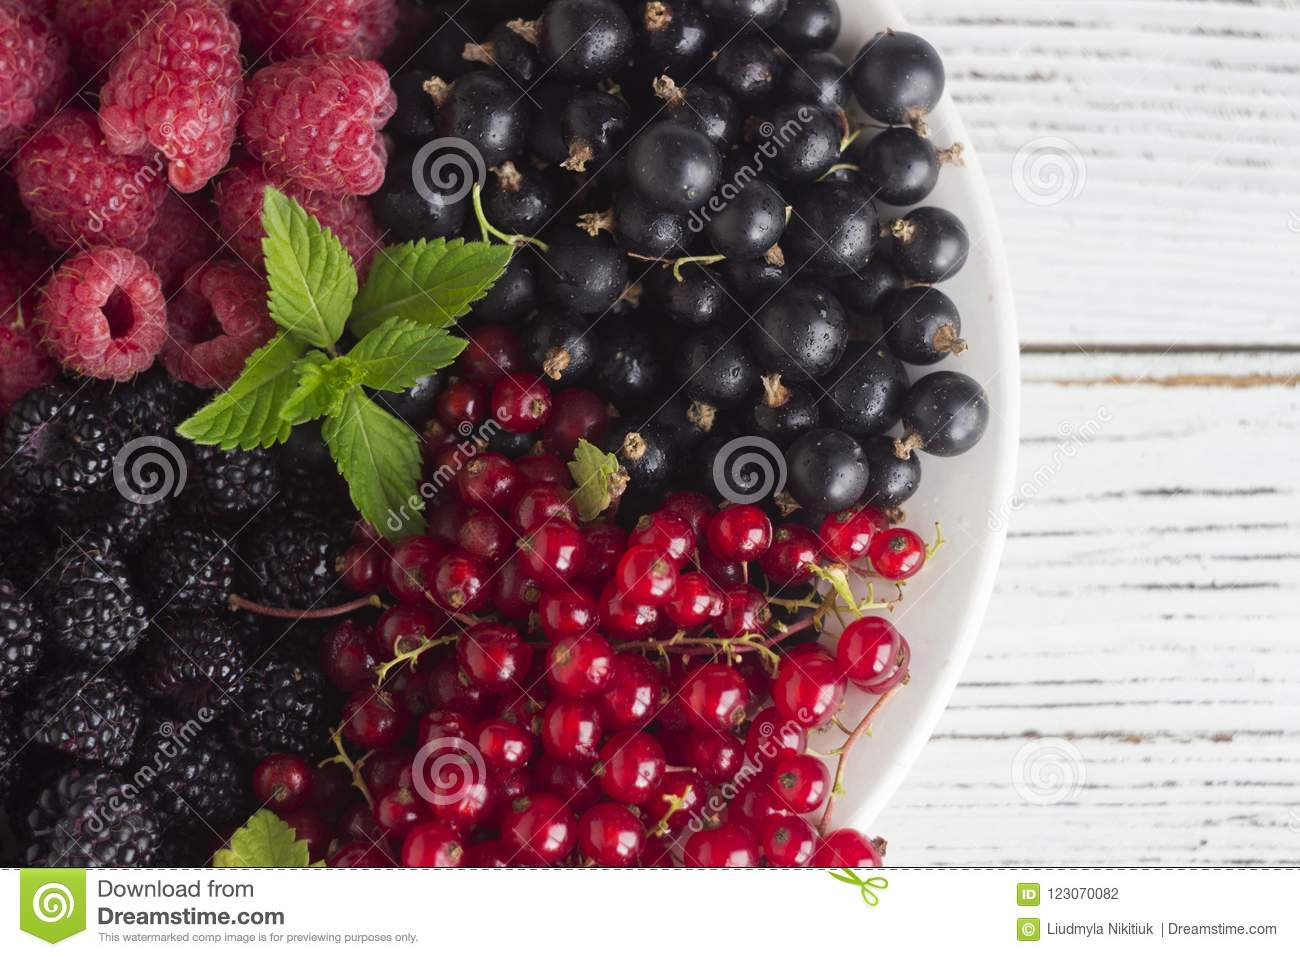 How are berries useful? 21